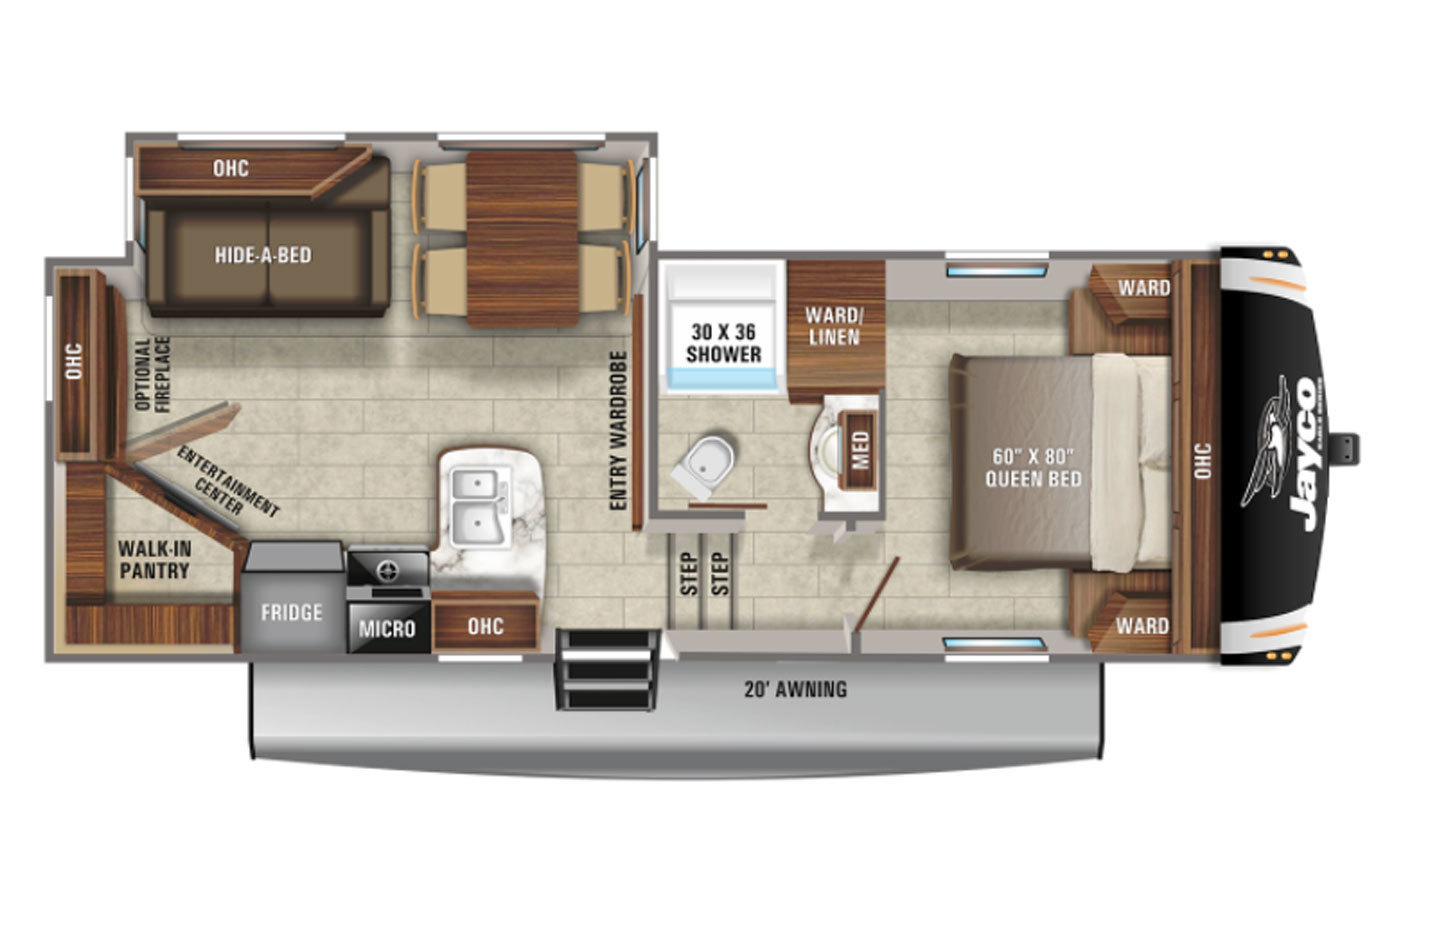 2021 Jayco Eagle HT 24RE Floorplan